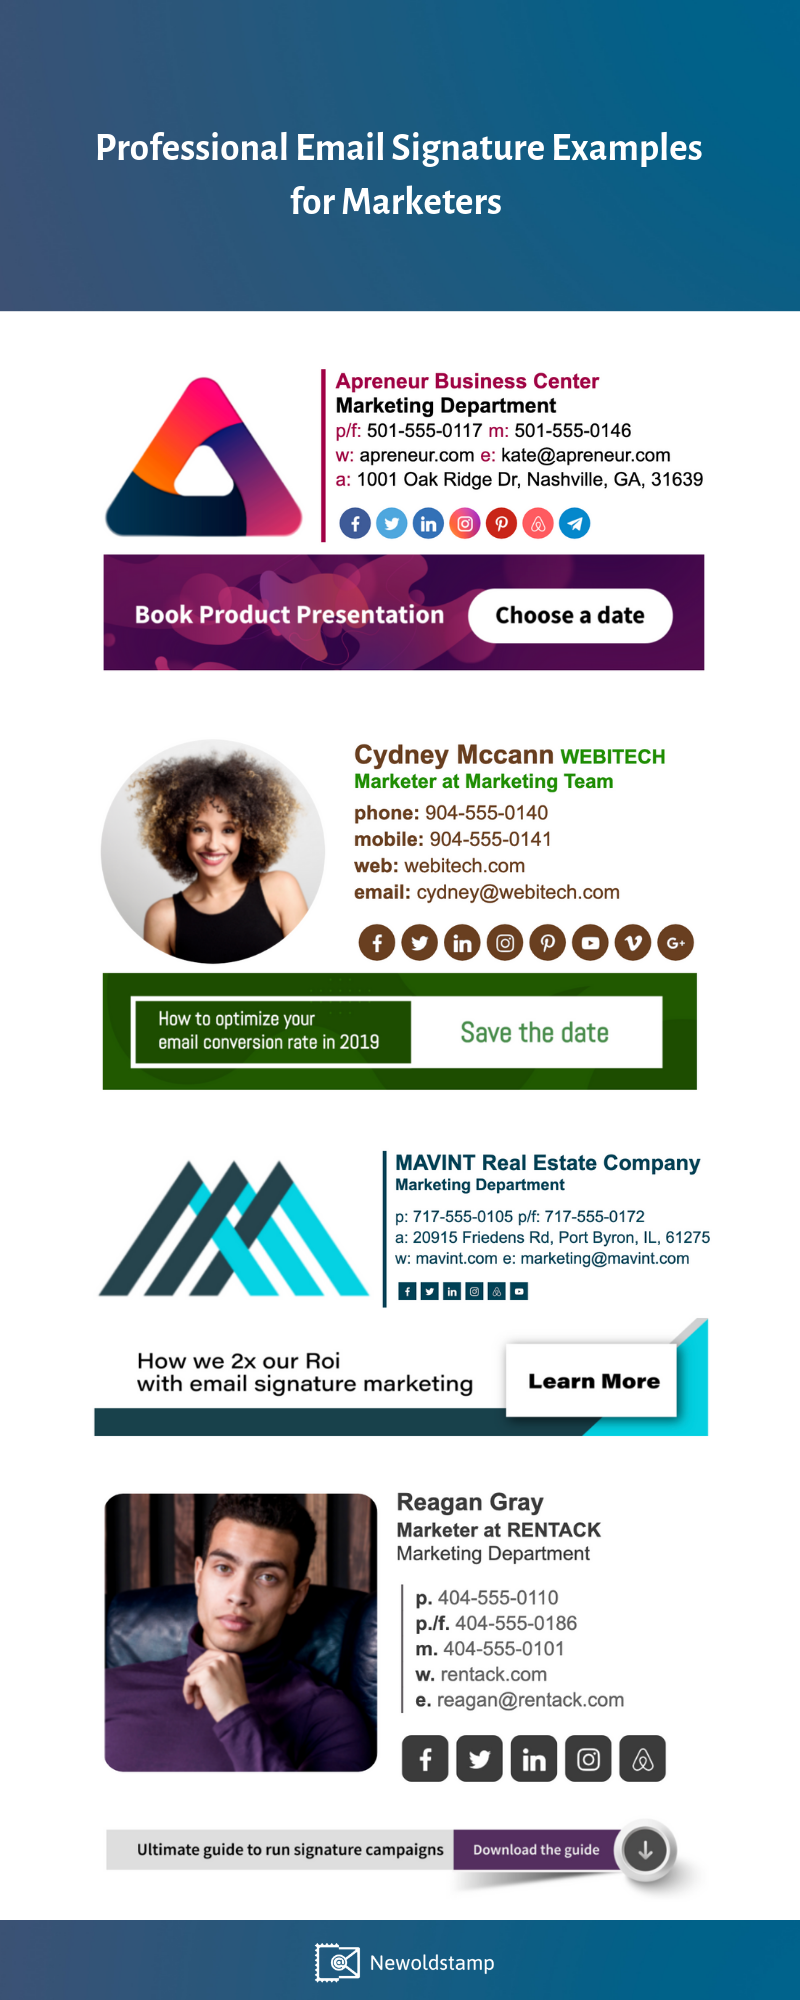 Professional Email Signature Examples for Marketers